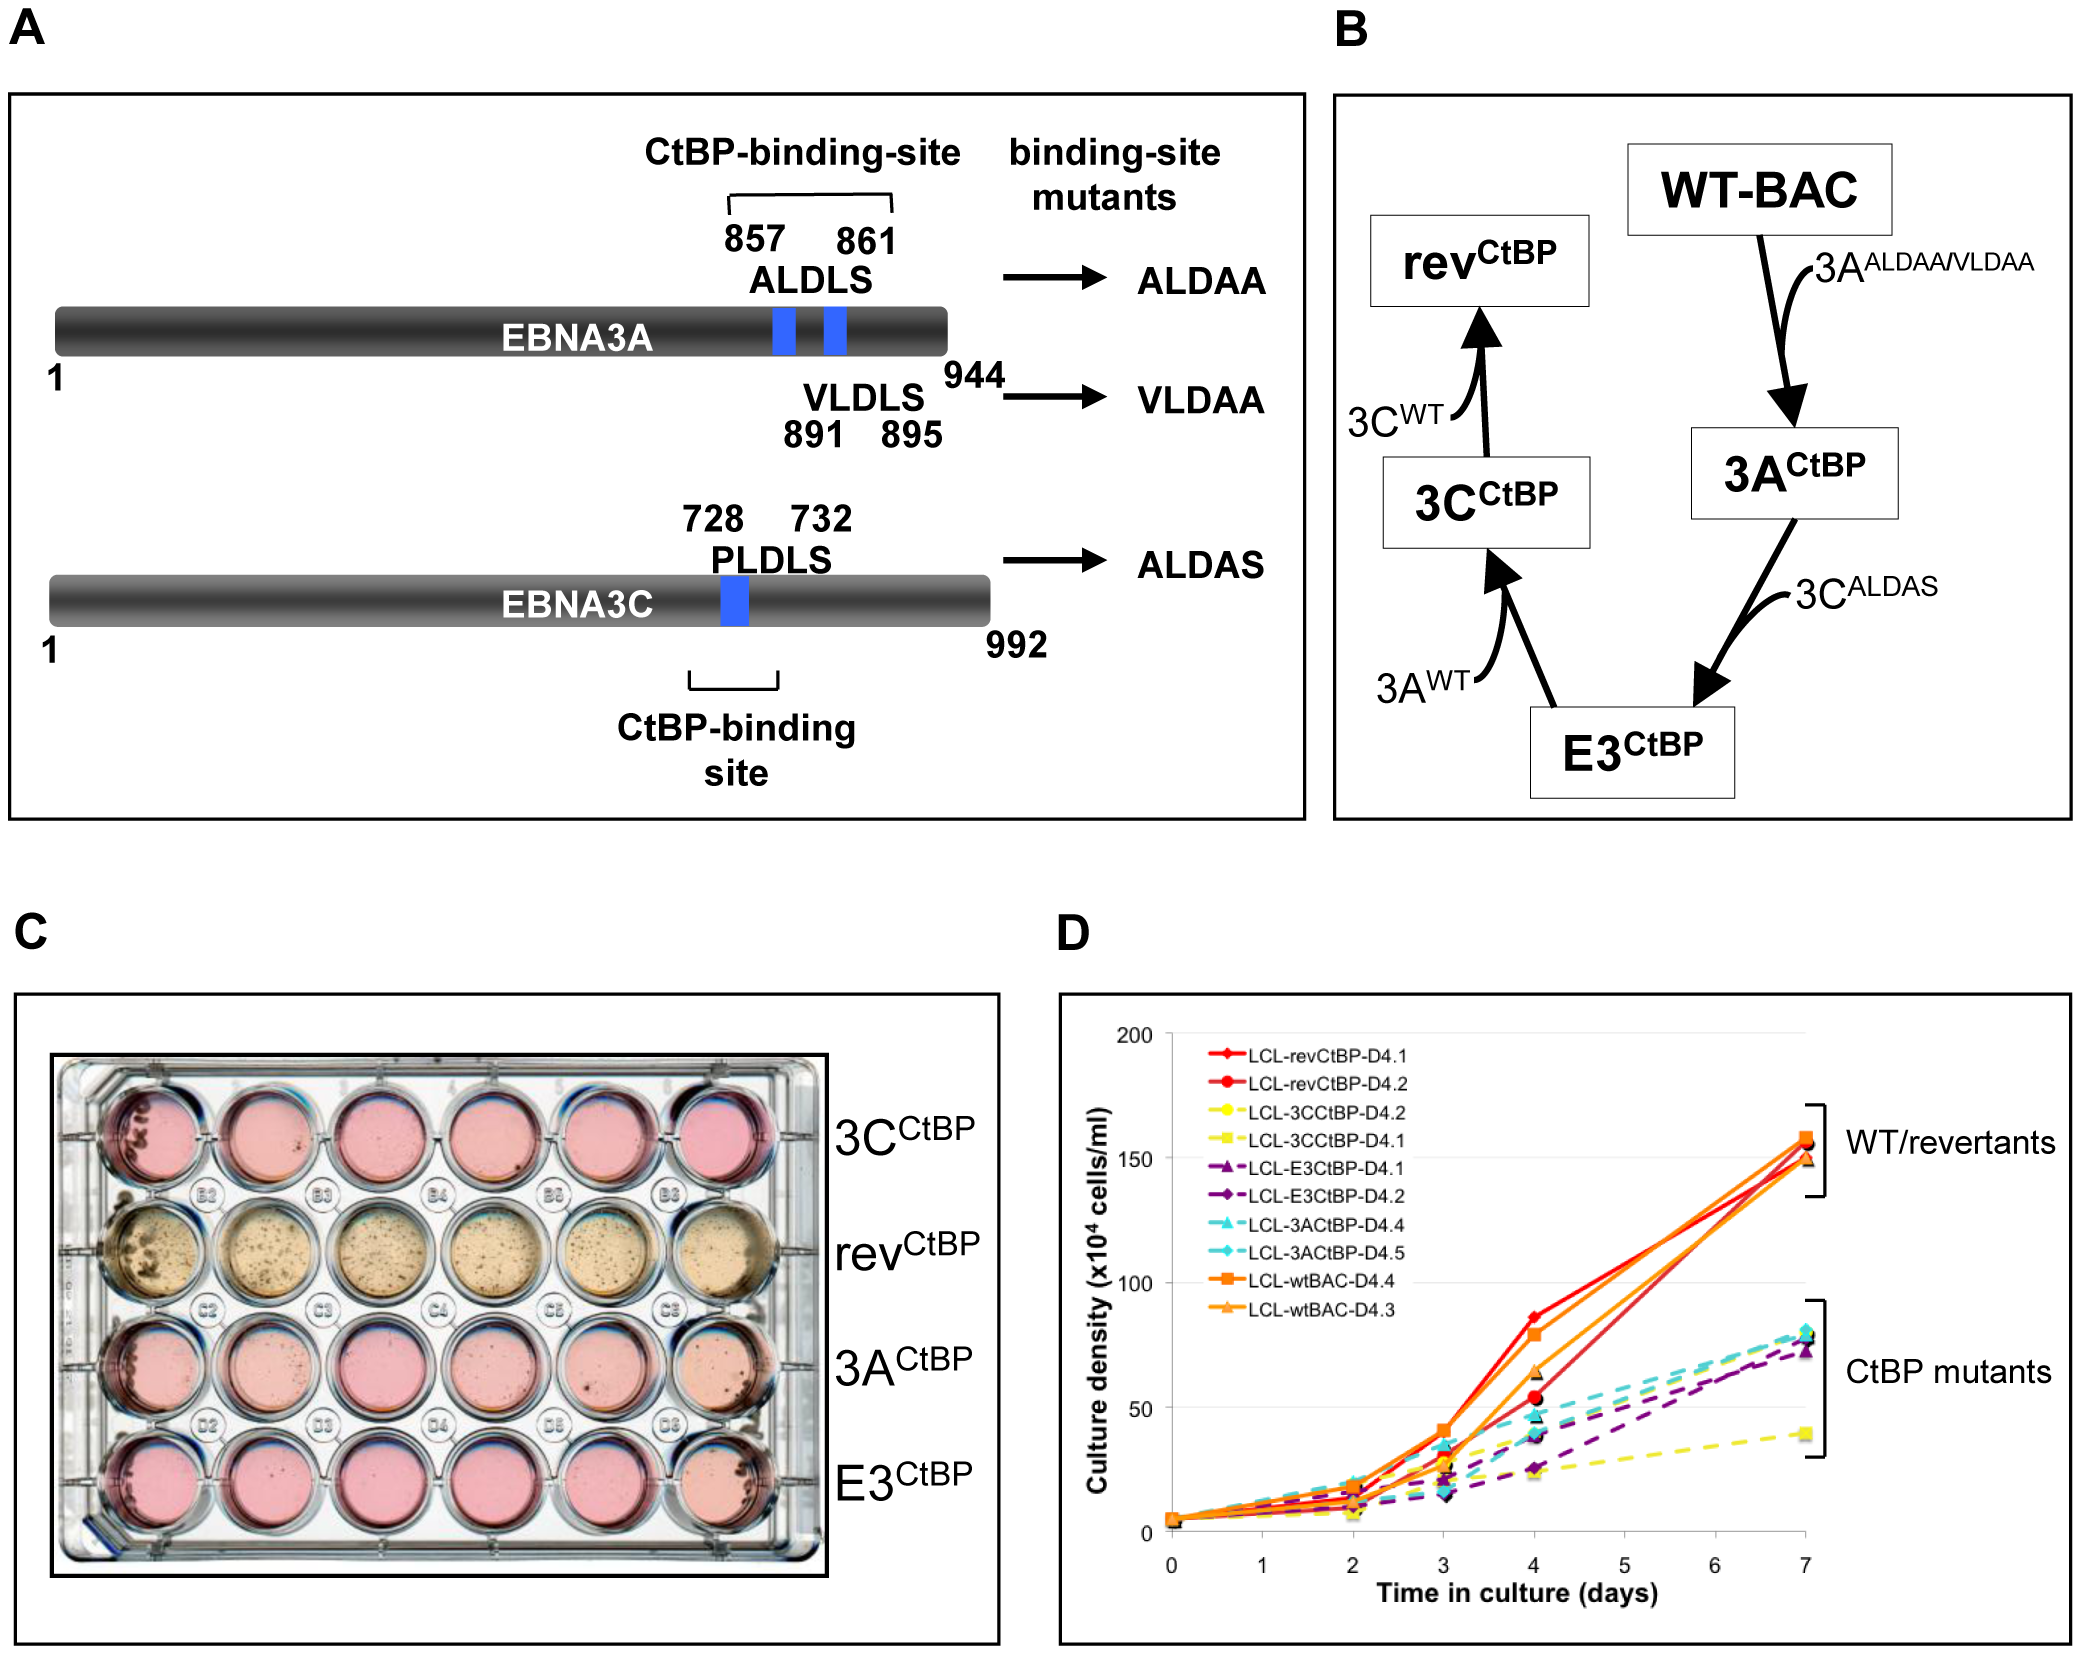 LCLs expressing CtBP-binding mutants of EBNA3A and EBNA3C grow relatively poorly.